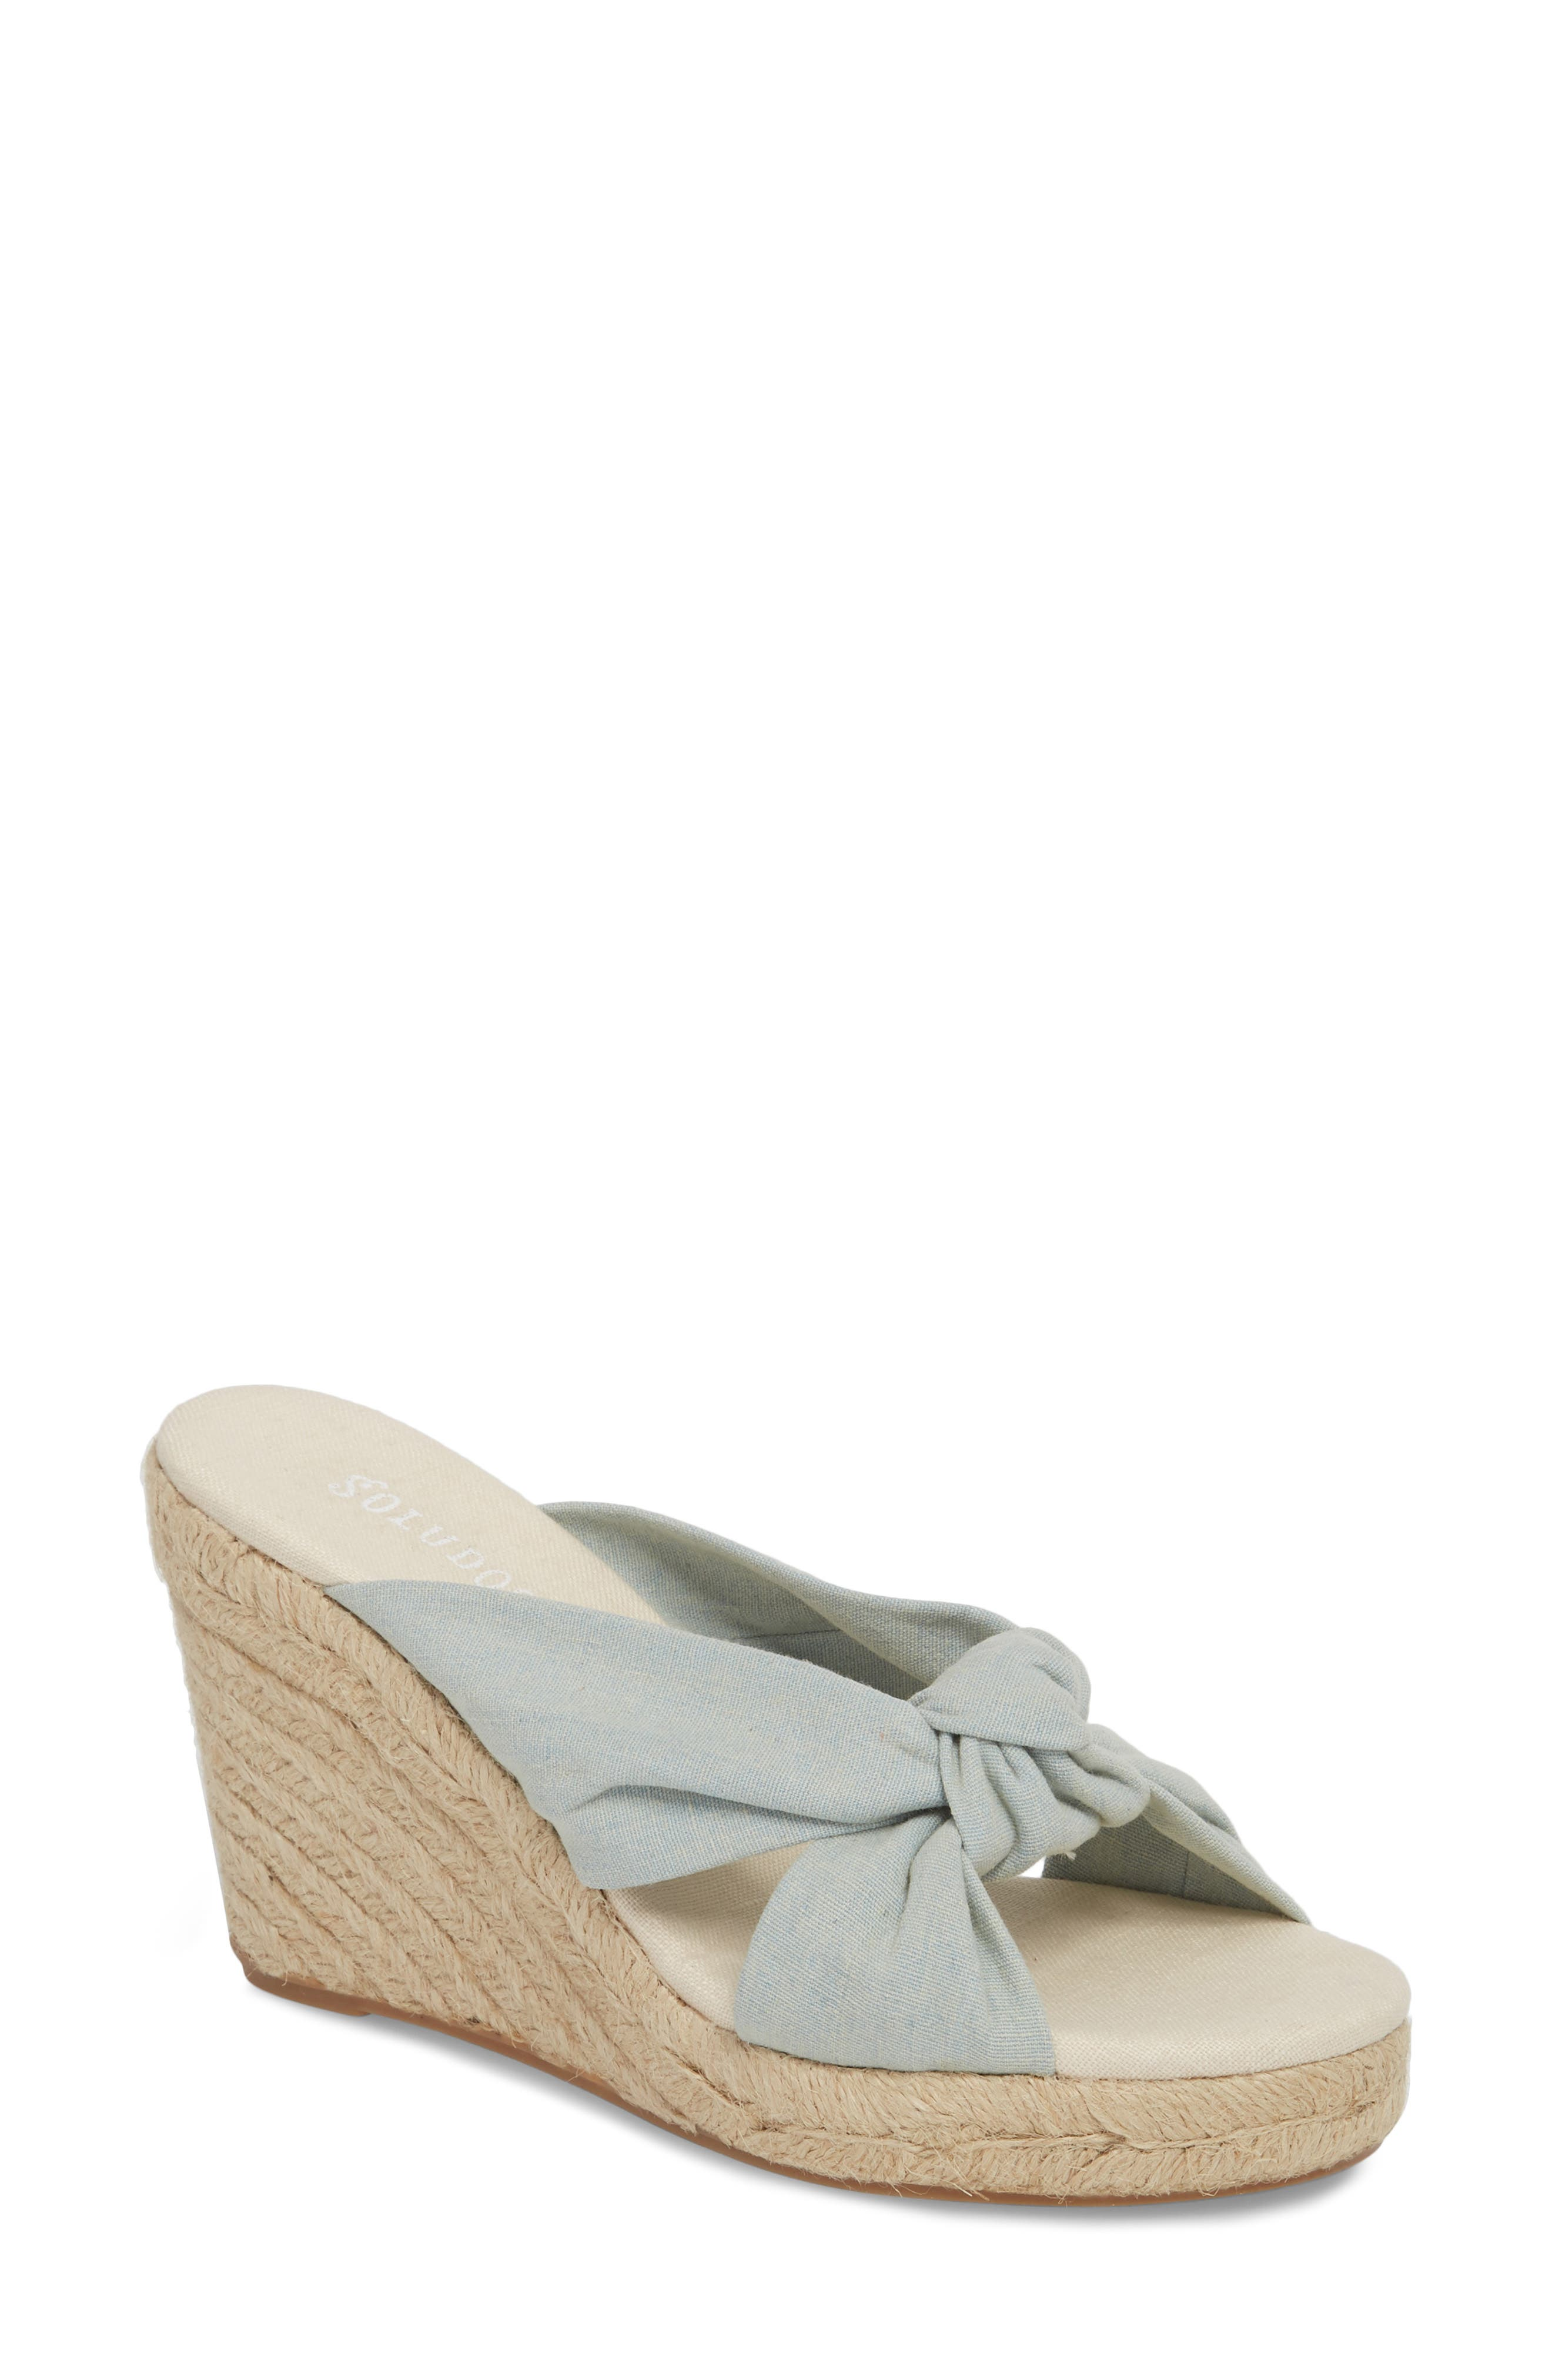 Knotted Espadrille Wedge Sandal,                         Main,                         color, 420